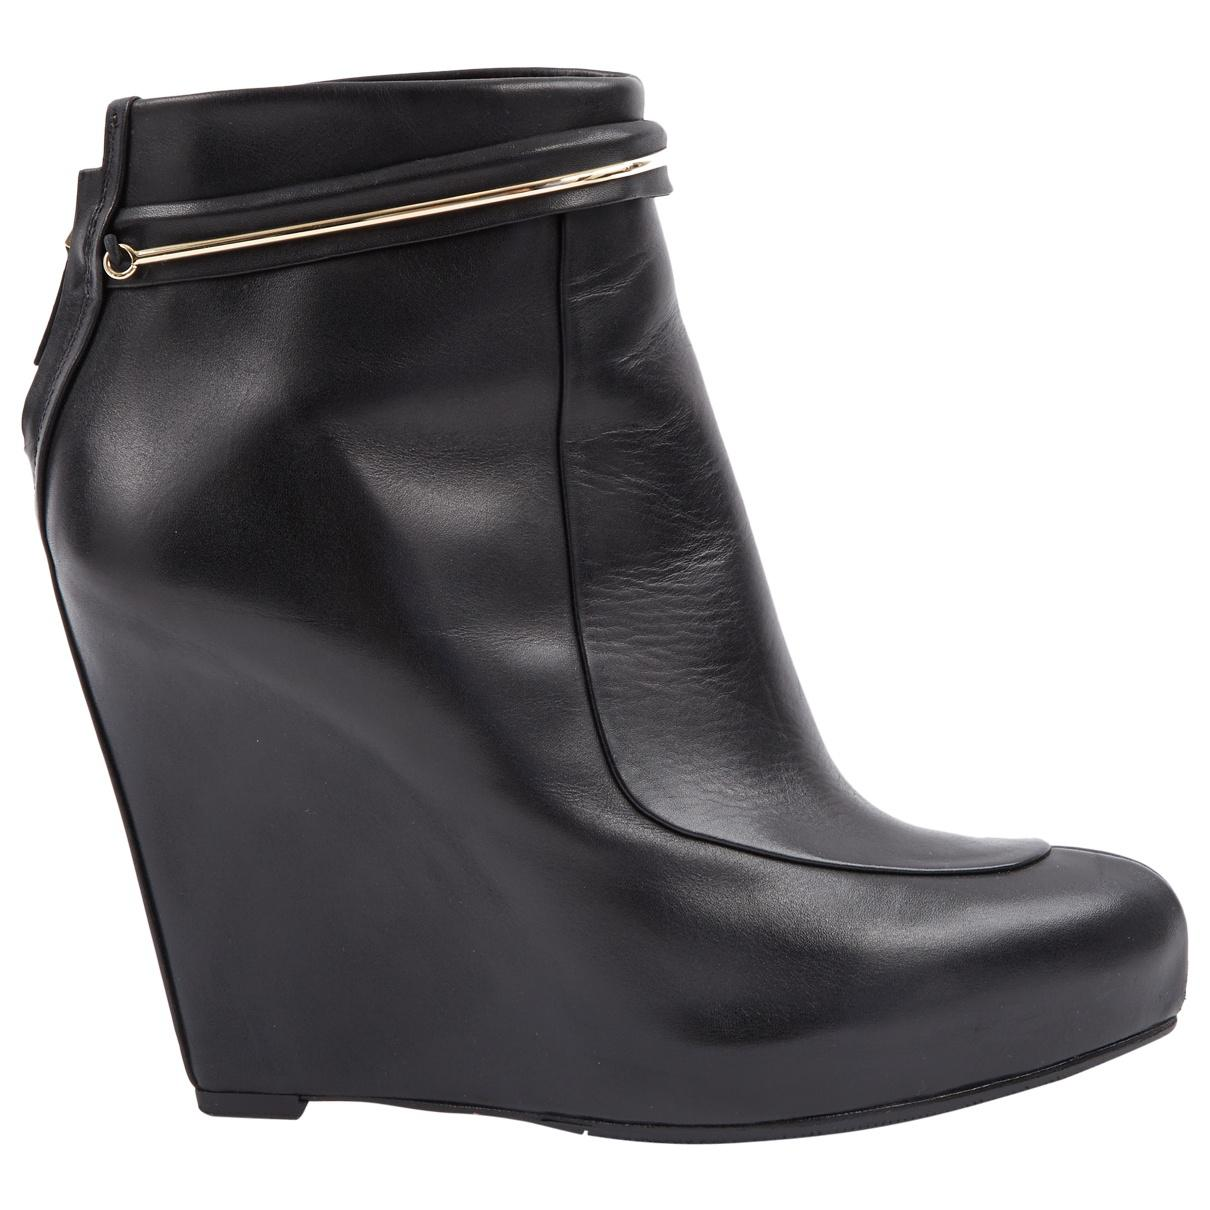 Pre-owned - Leather boots Givenchy Shop Offer Cheap Price Authentic MYNPnXiBU